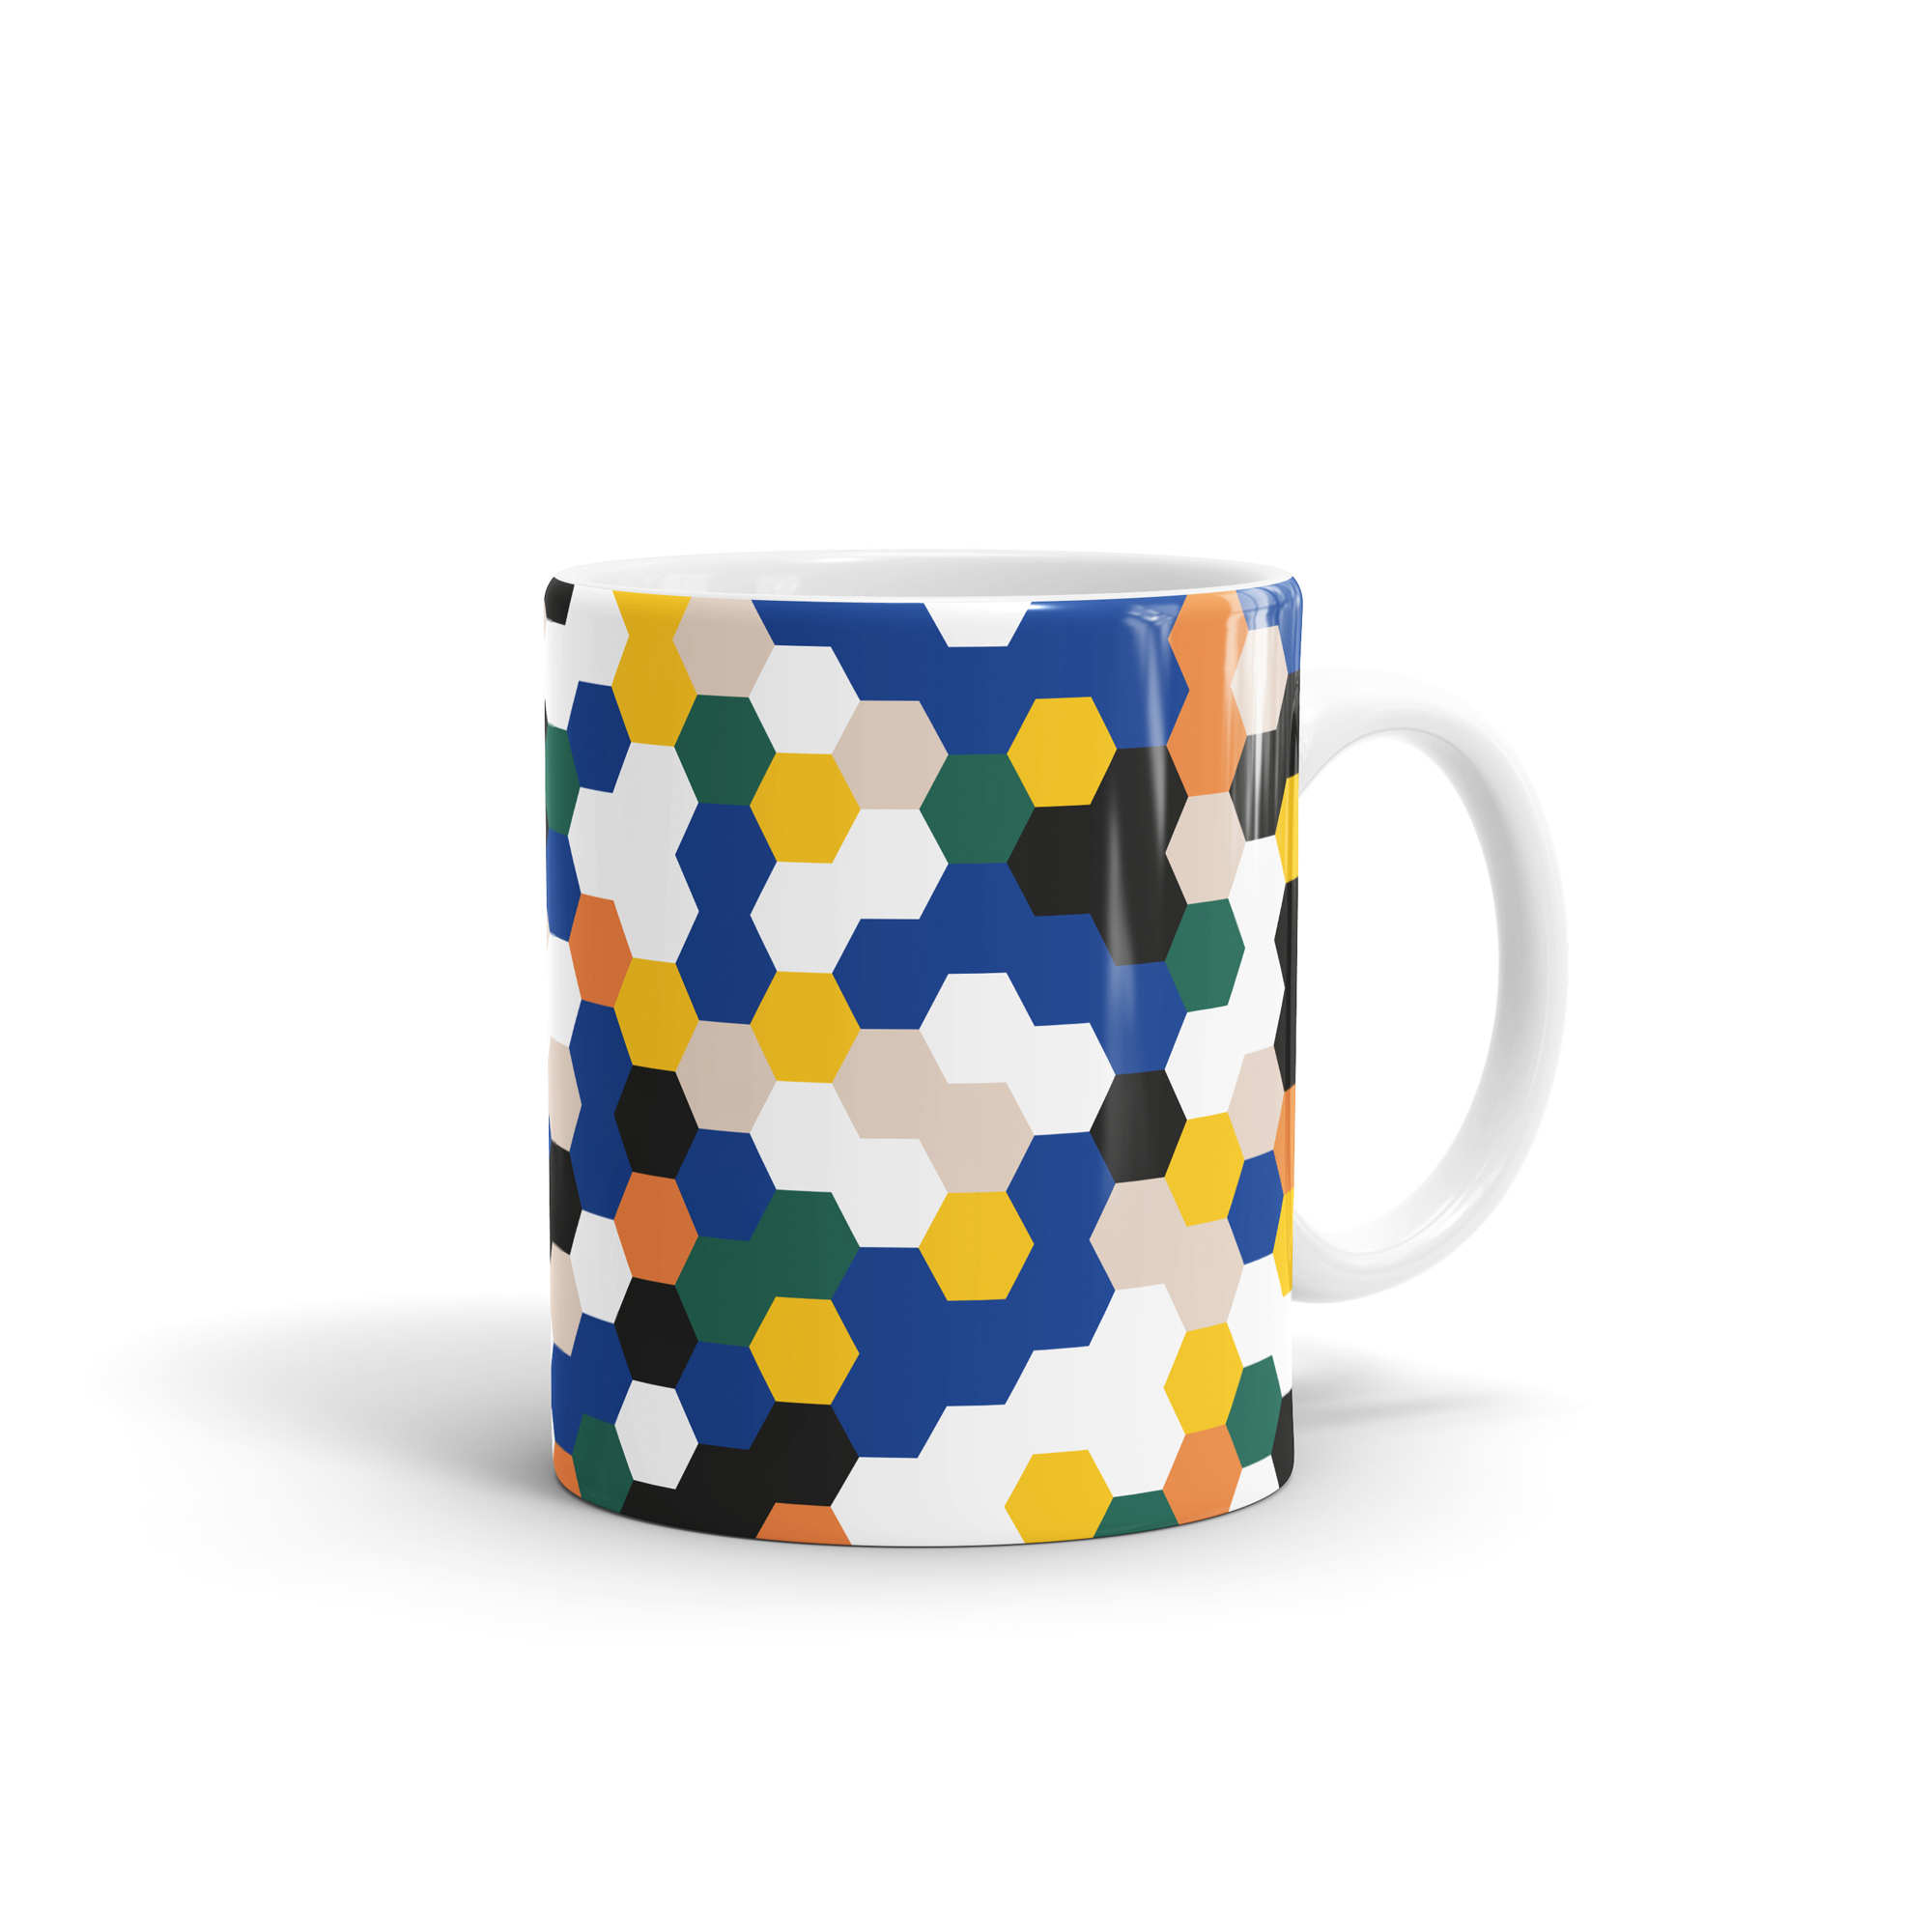 Hexagon Pattern Mug by WEEW Smart Design